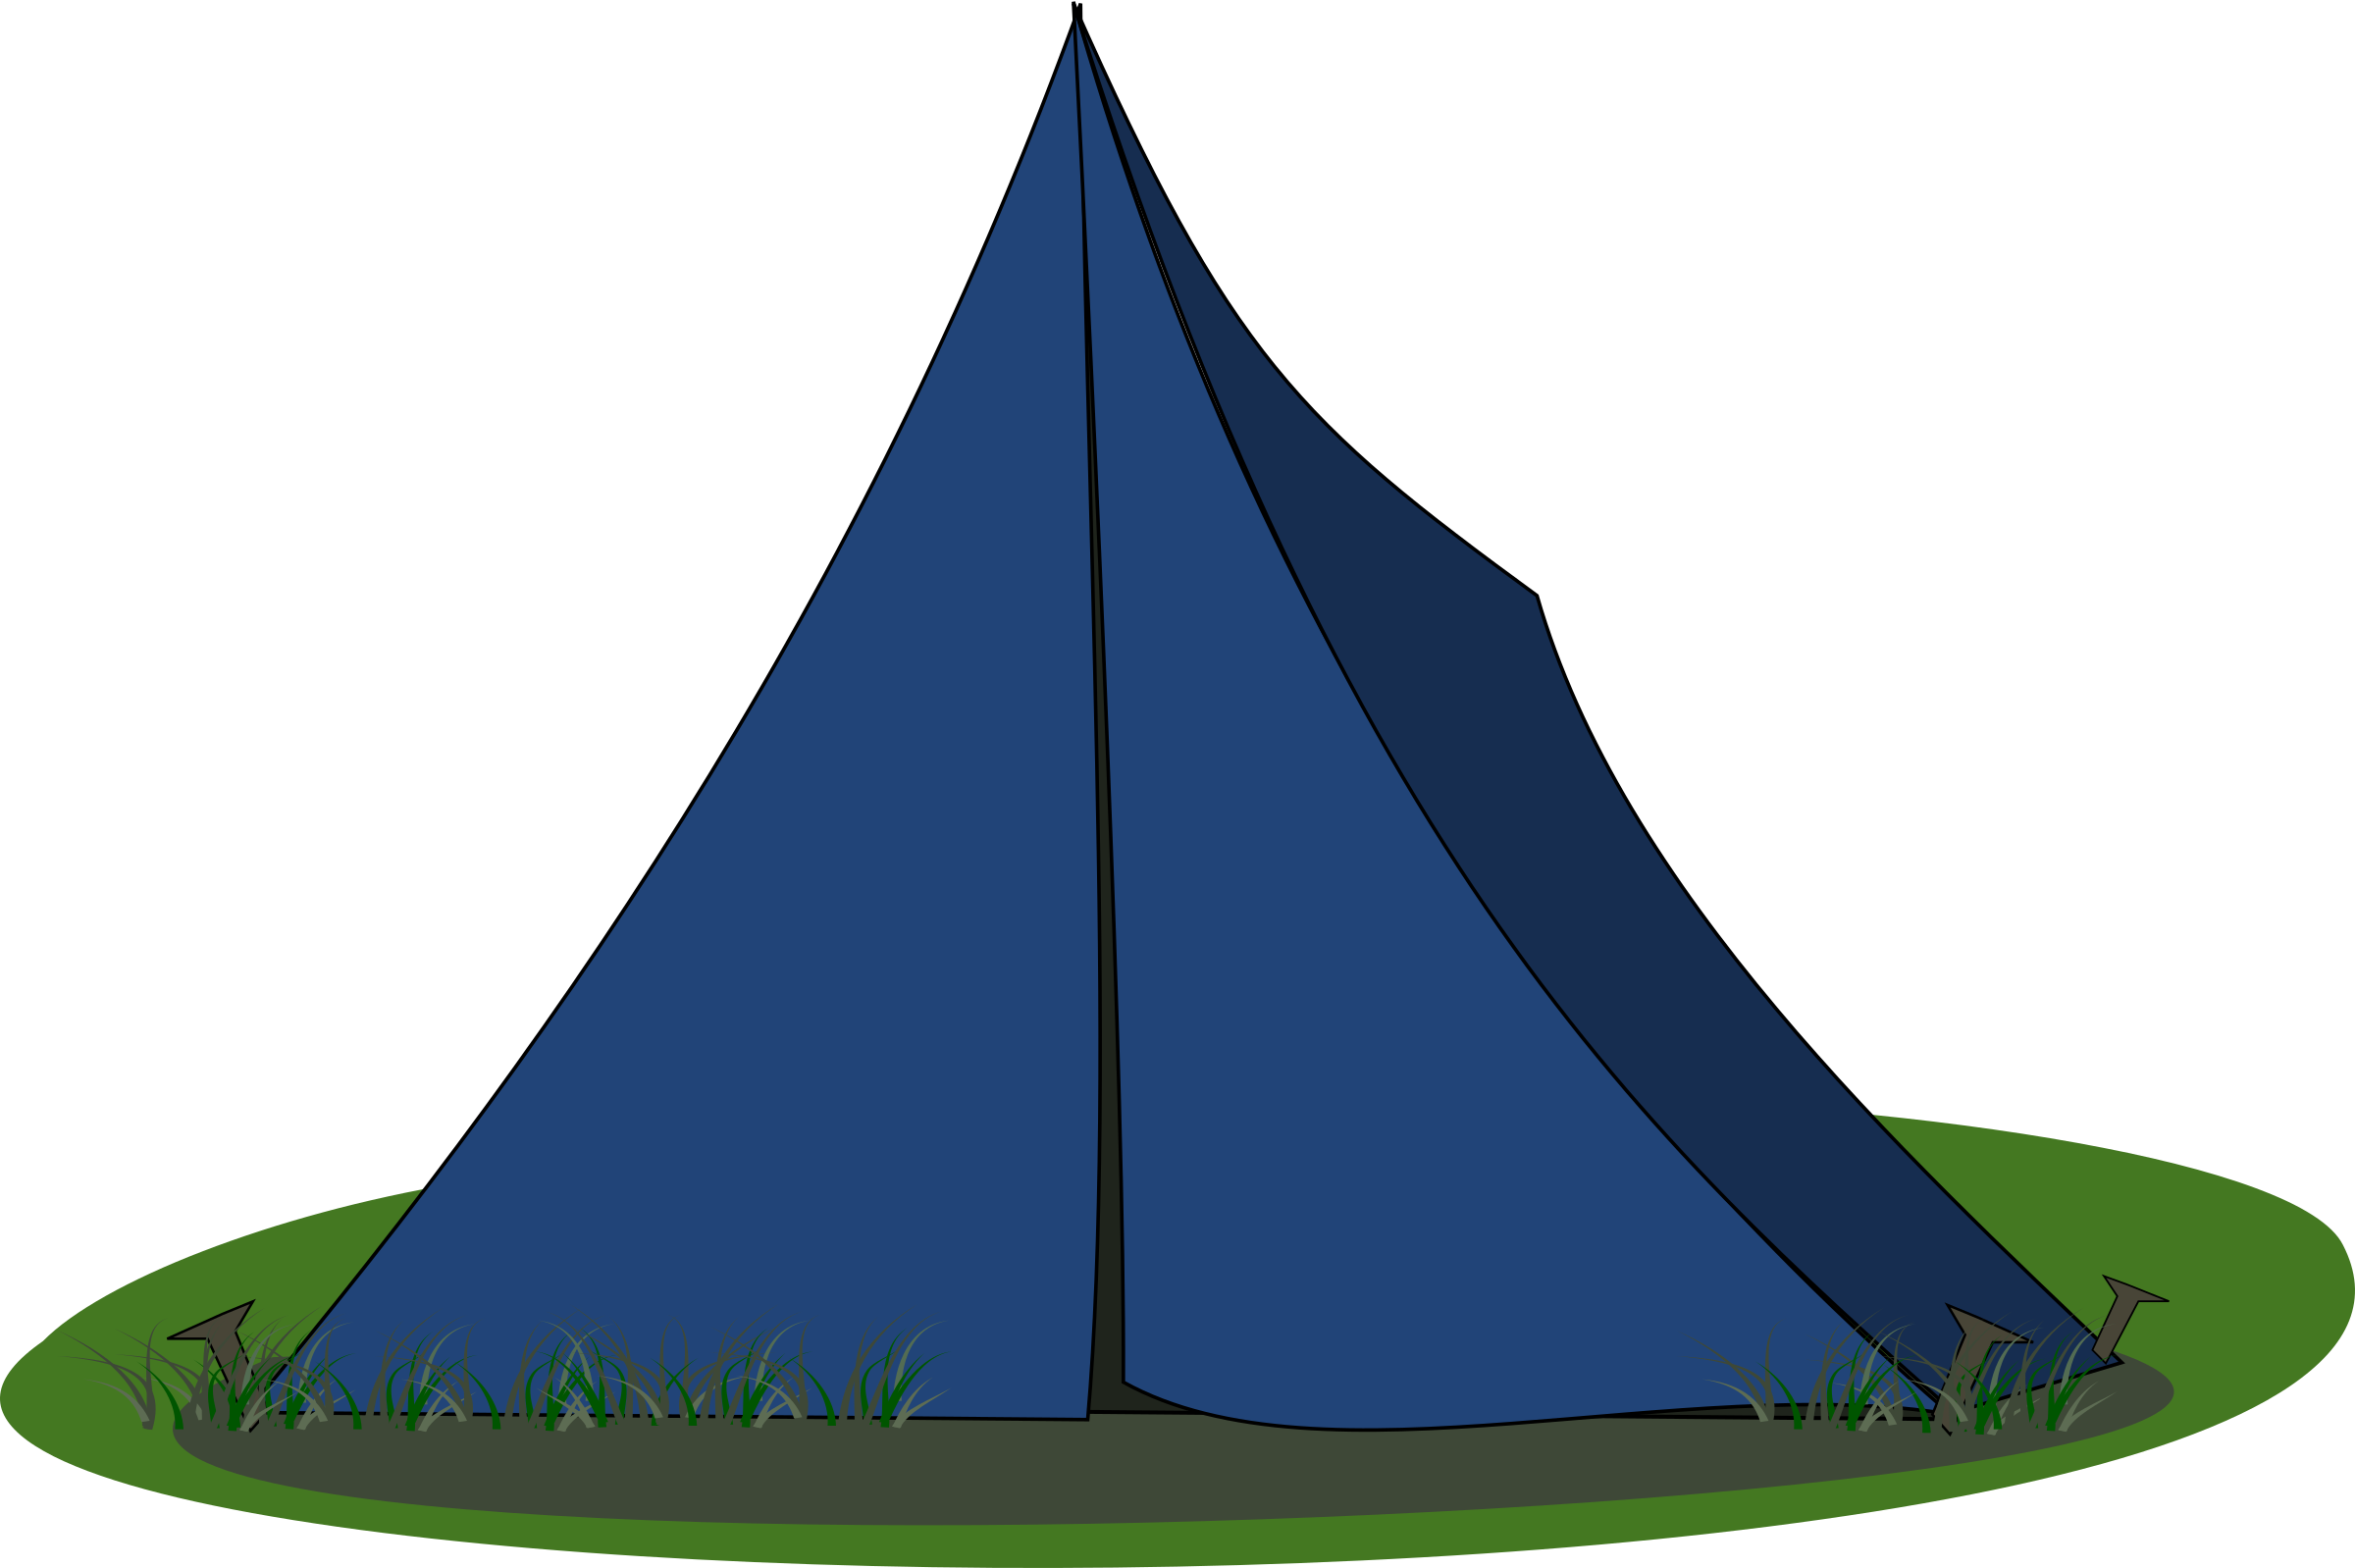 Blue Ridge Tent by stevepetmonkey